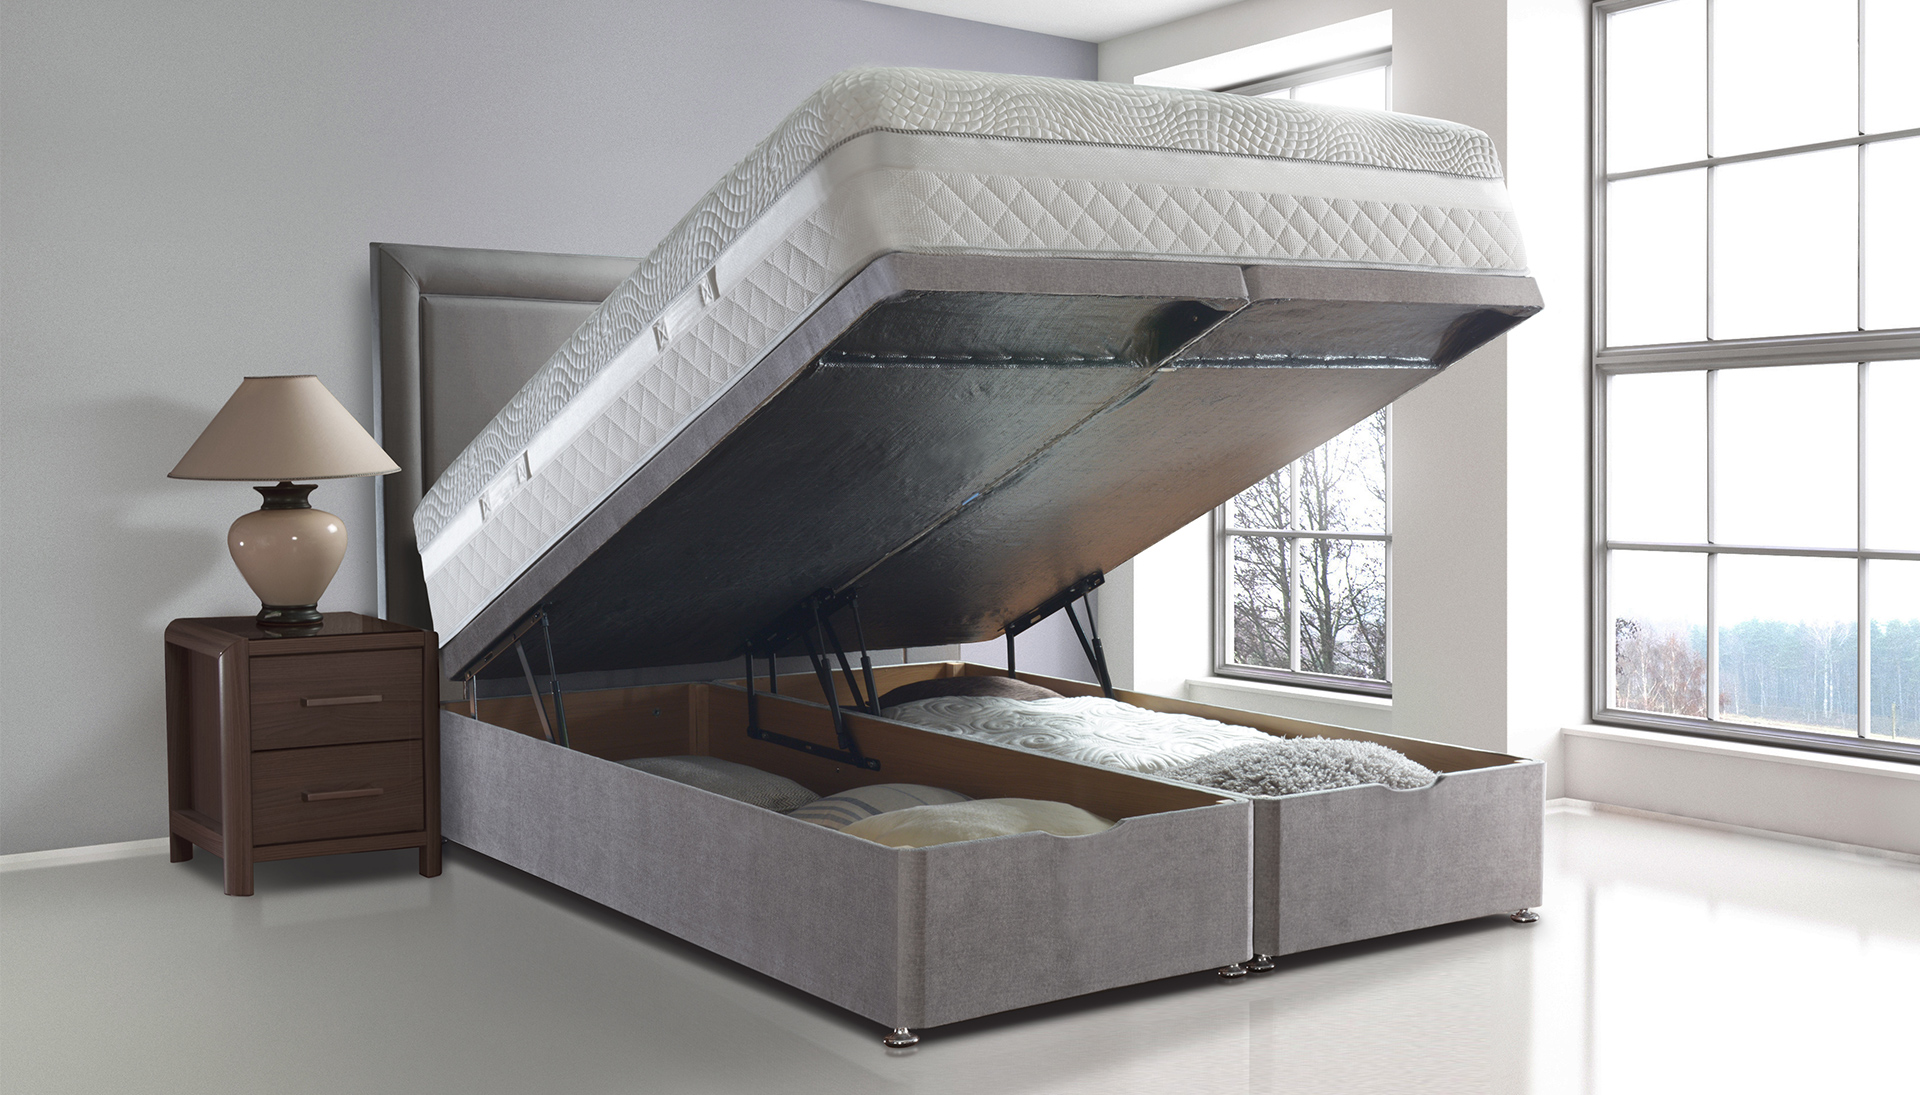 Beds Storage Options